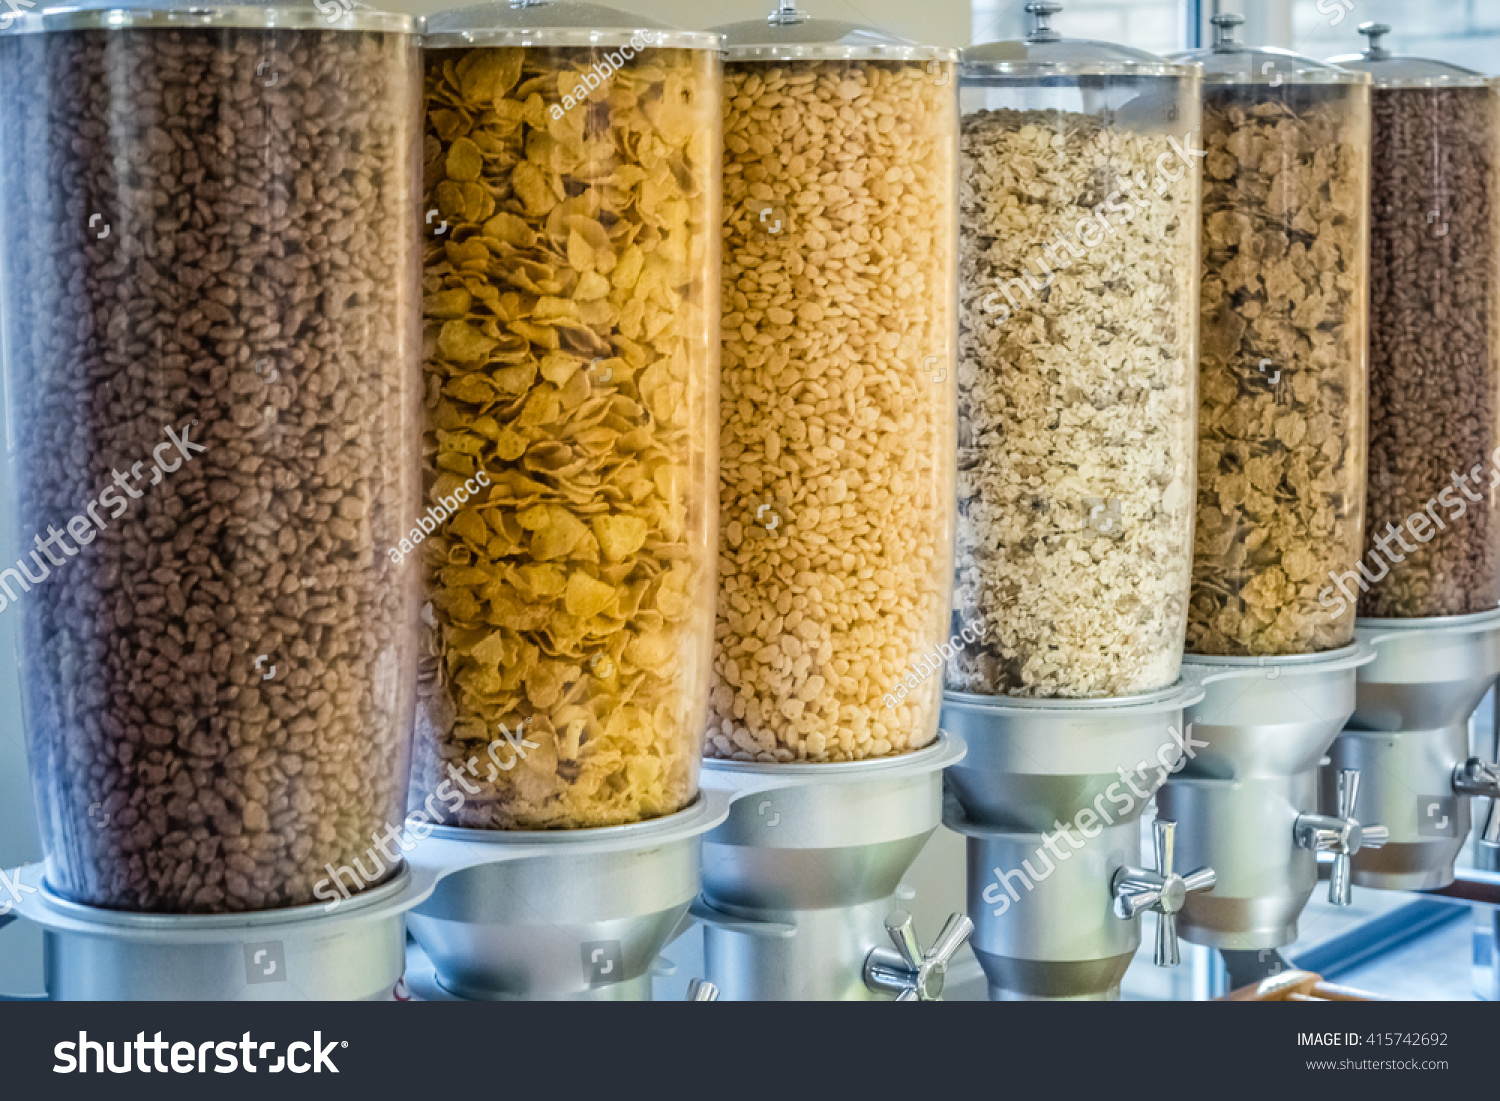 Cereal dispensers offering various kind cereals stock photo cereal dispensers offering various kind of cereals on a self service breakfast counter in a hotel ccuart Images